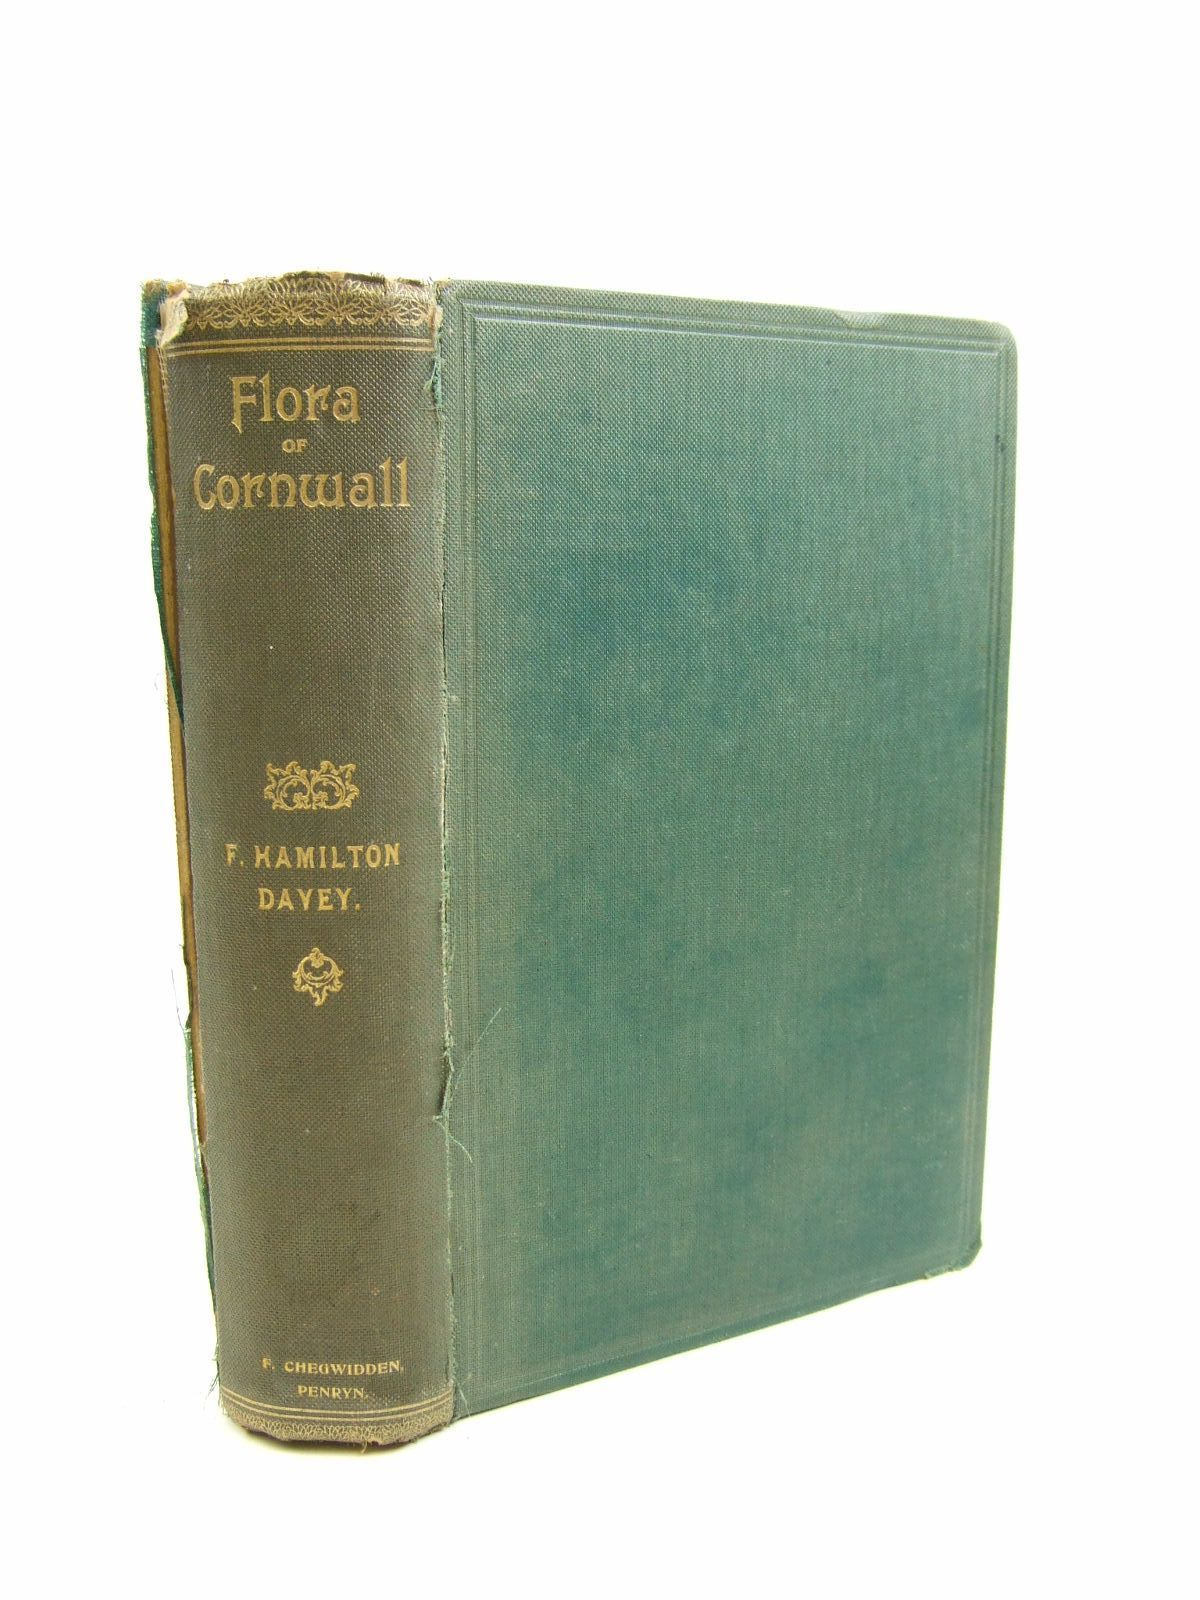 'FLORA OF CORNWALL' (1909) | F. Hamilton Davey:  Published by F. Chegwidden. 1st edition.  'Good condition. Green cloth boards, gilt title to spine. Being an account of the flowering plants and ferns found in the county of Cornwall including the Scilly Isles. With six portraits and a map. 570 pages including list of subscribers.  Name stamp to front endpaper. Contents very good. Spine split and browned.'     ✫ღ⊰n